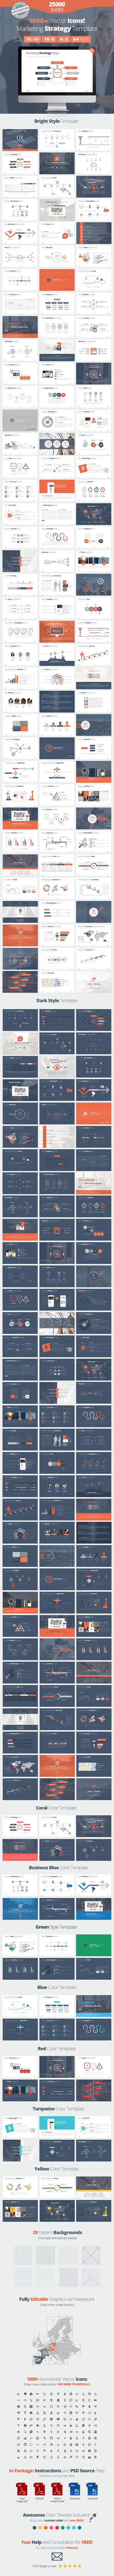 Marketing Strategy Presentation for Keynote - Business Keynote Templates